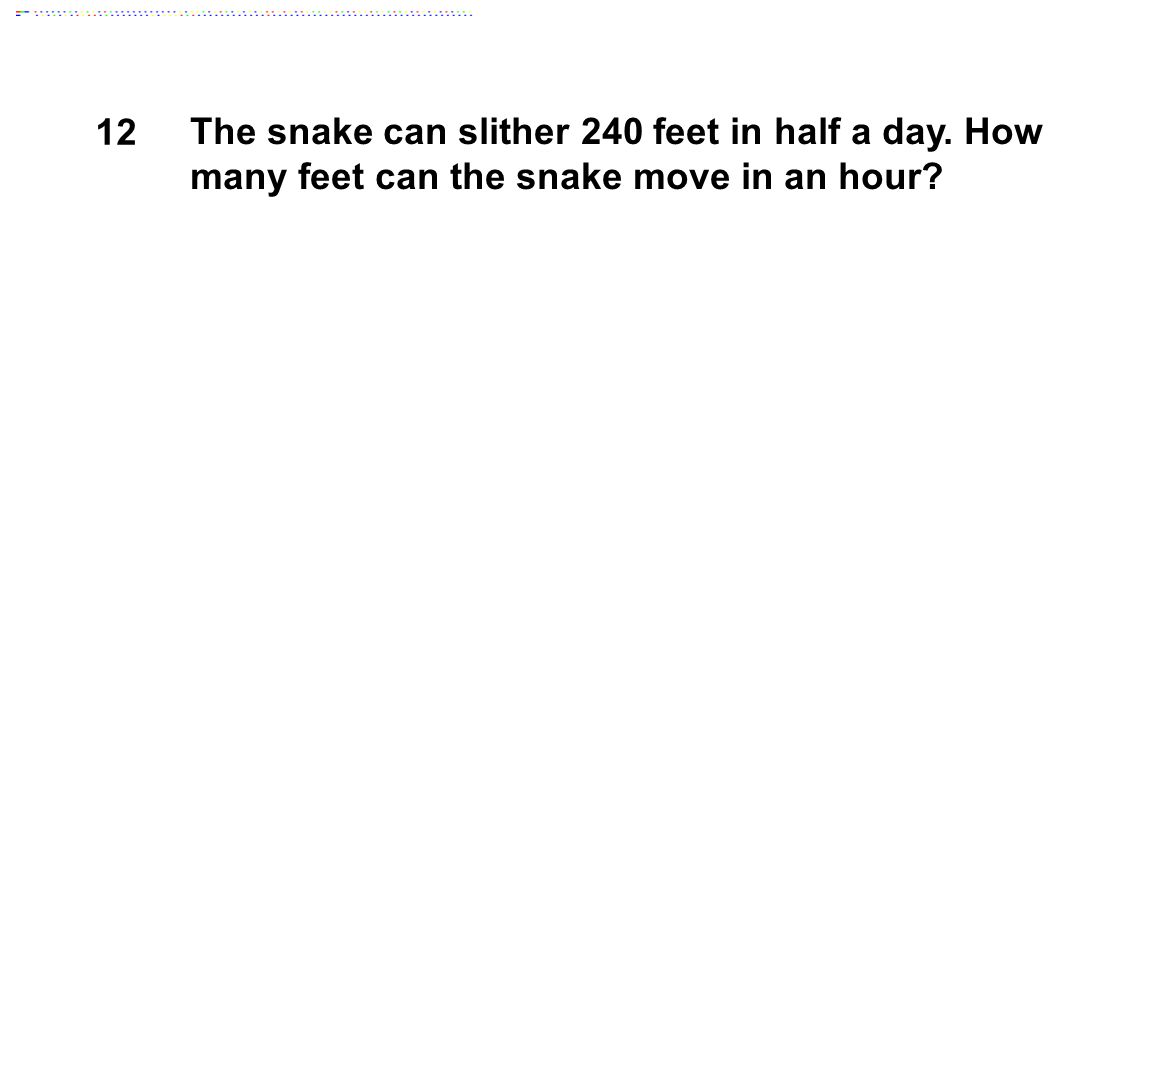 12 The snake can slither 240 feet in half a day. How many feet can the snake move in an hour?